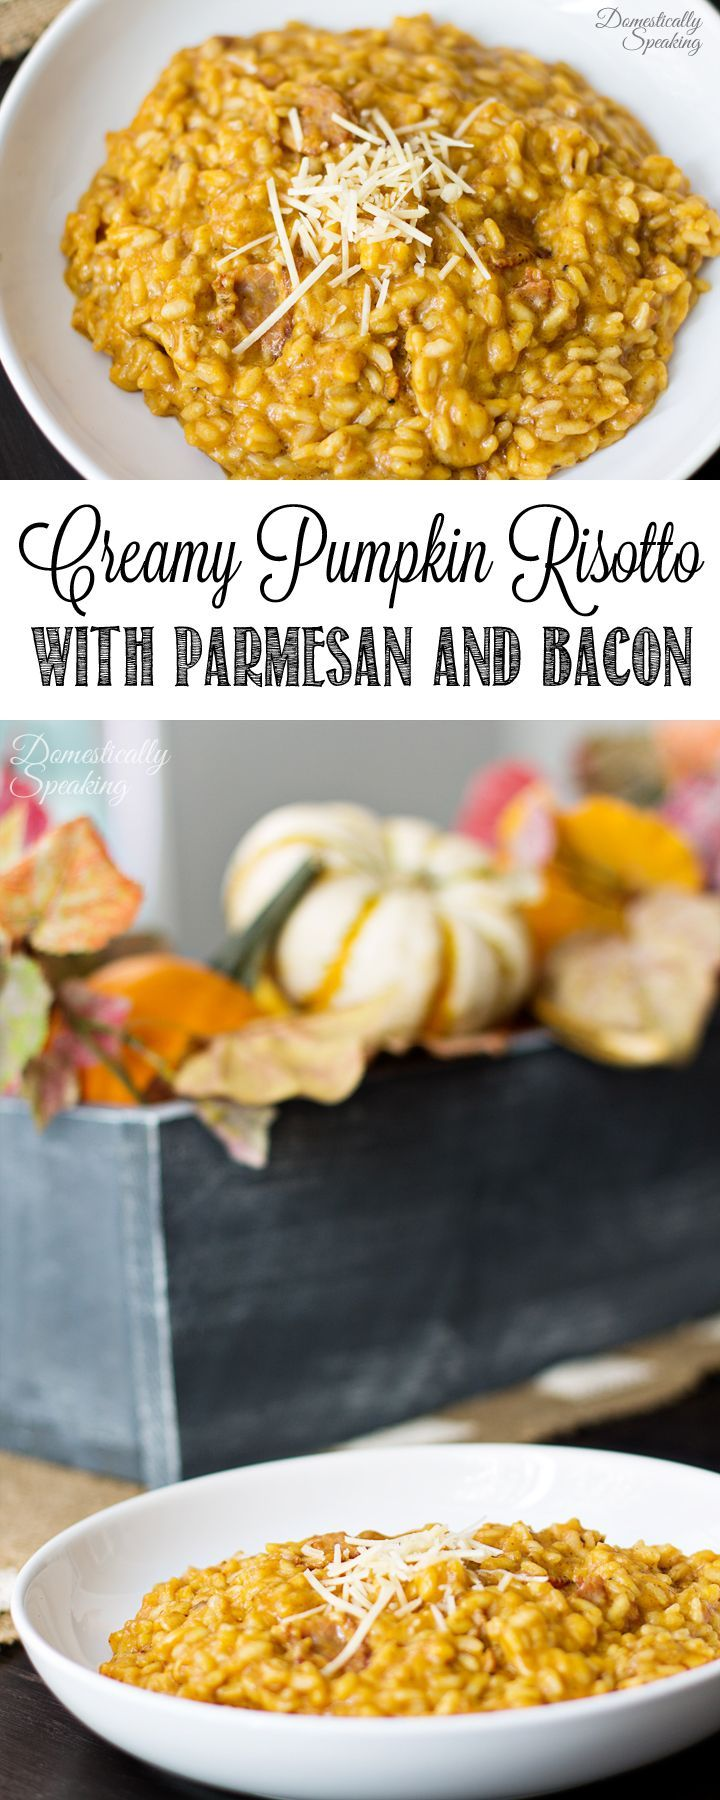 Creamy Pumpkin Risotto with Parmesan and Applewood Bacon #ad